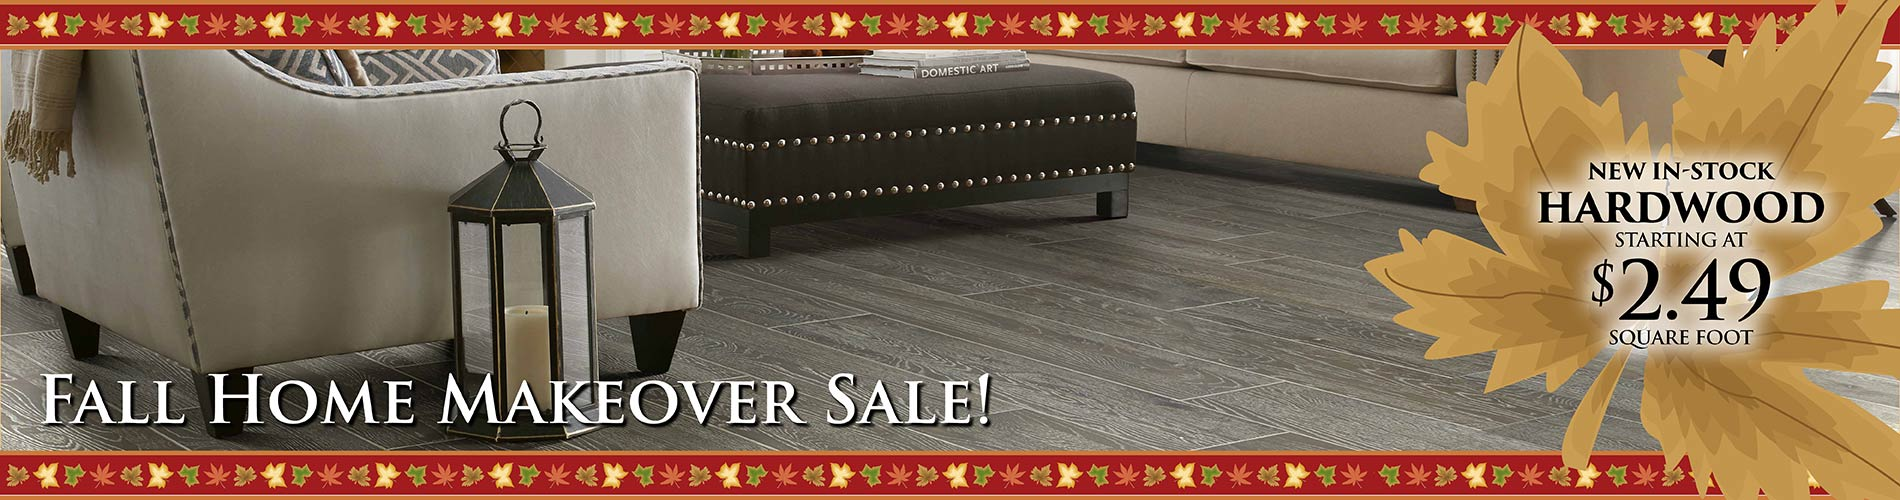 Hardwood flooring Fall Home Makeover Sale at Monroeville AL Floors To Go